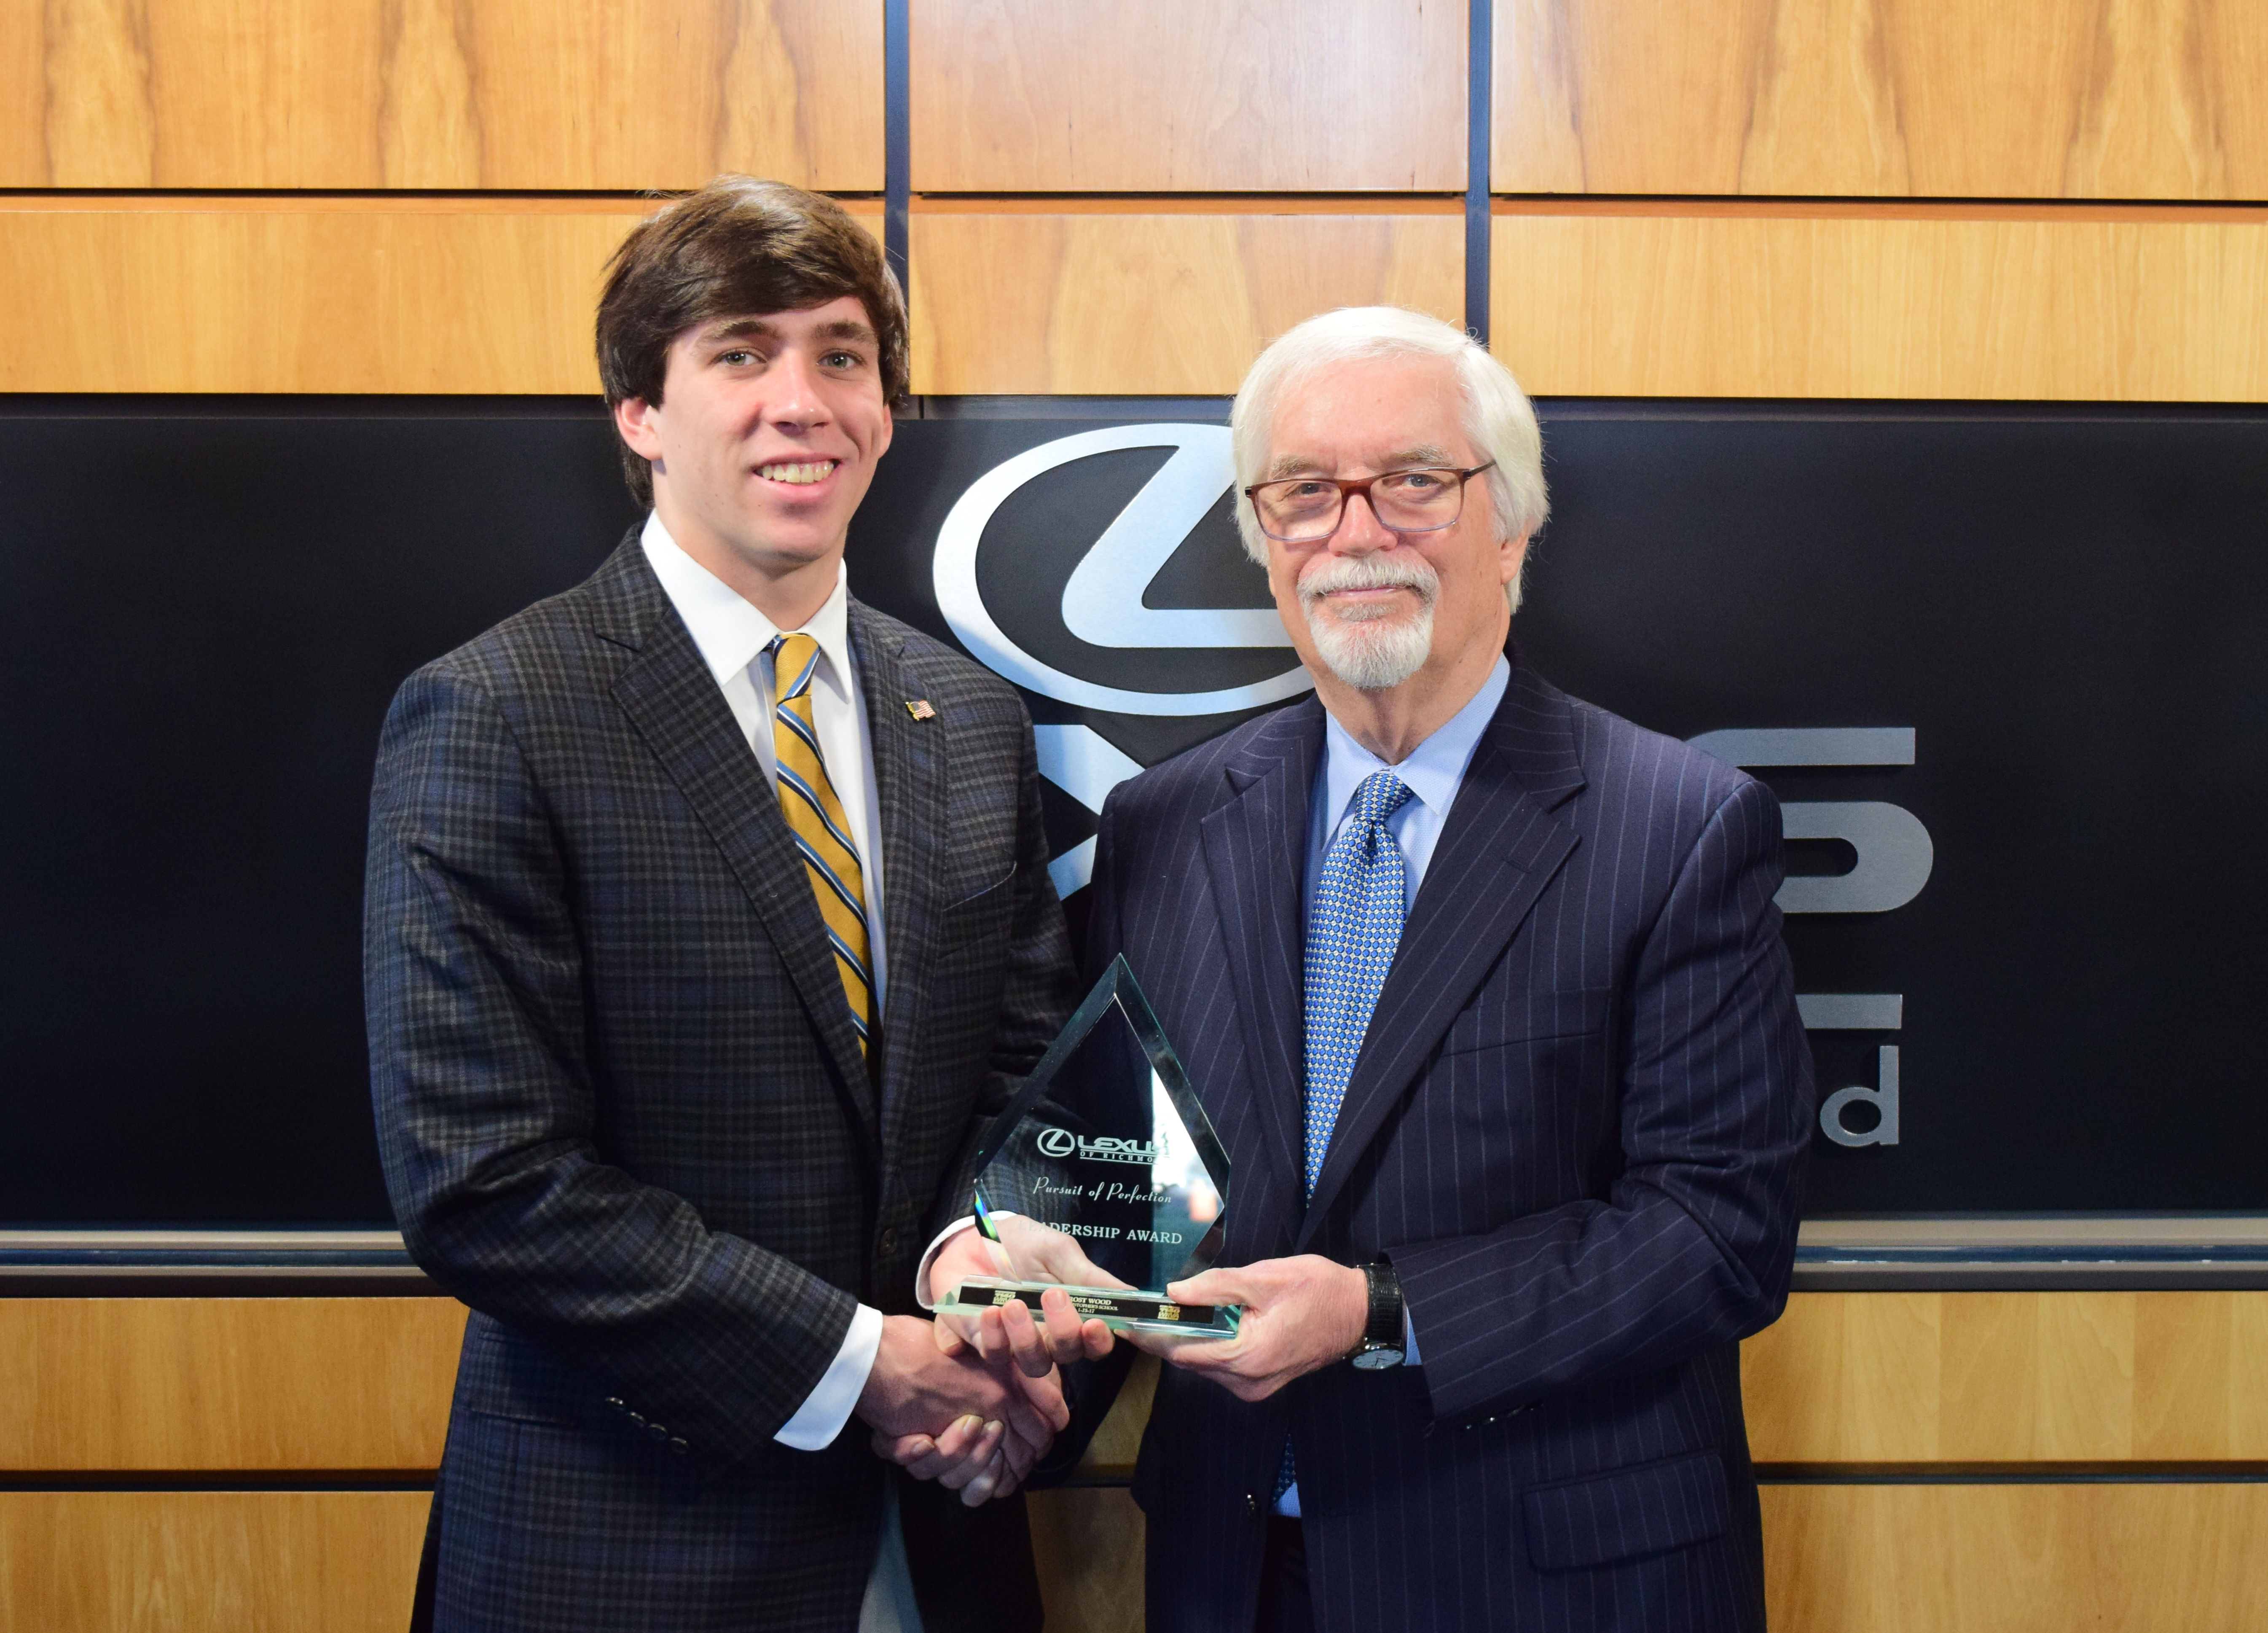 Frost Wood Of St. Christopheru0027s School Is Lexus Of Richmondu0027s Week 15  Nominee For The Leadership Award Scholarship. With His Current 4.0 GPA, ...